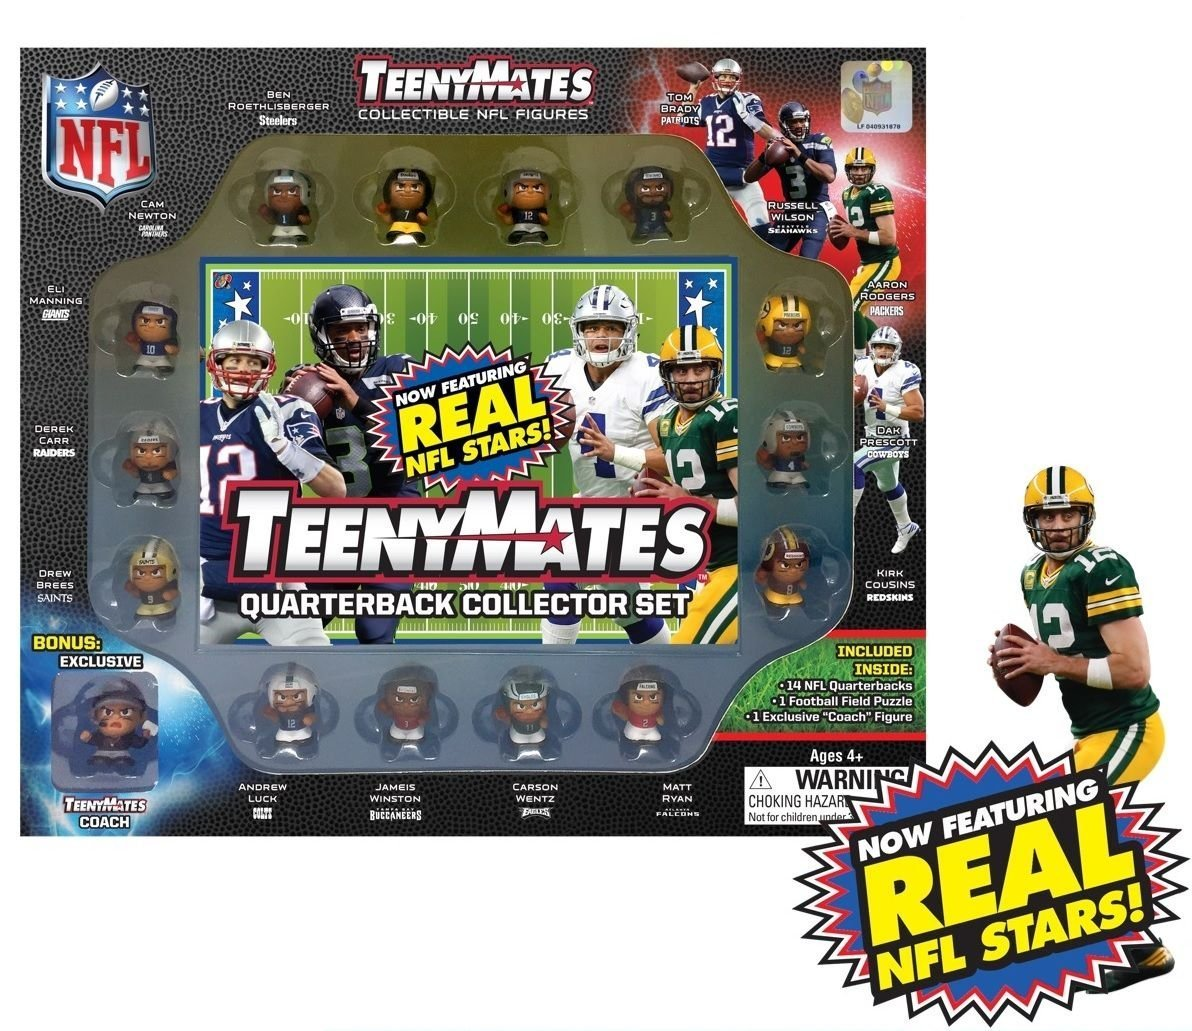 TeenyMates Collectible NFL Figures Quarterback Collector Gift Set - 14 NFL Quarterbacks by TeenyMates